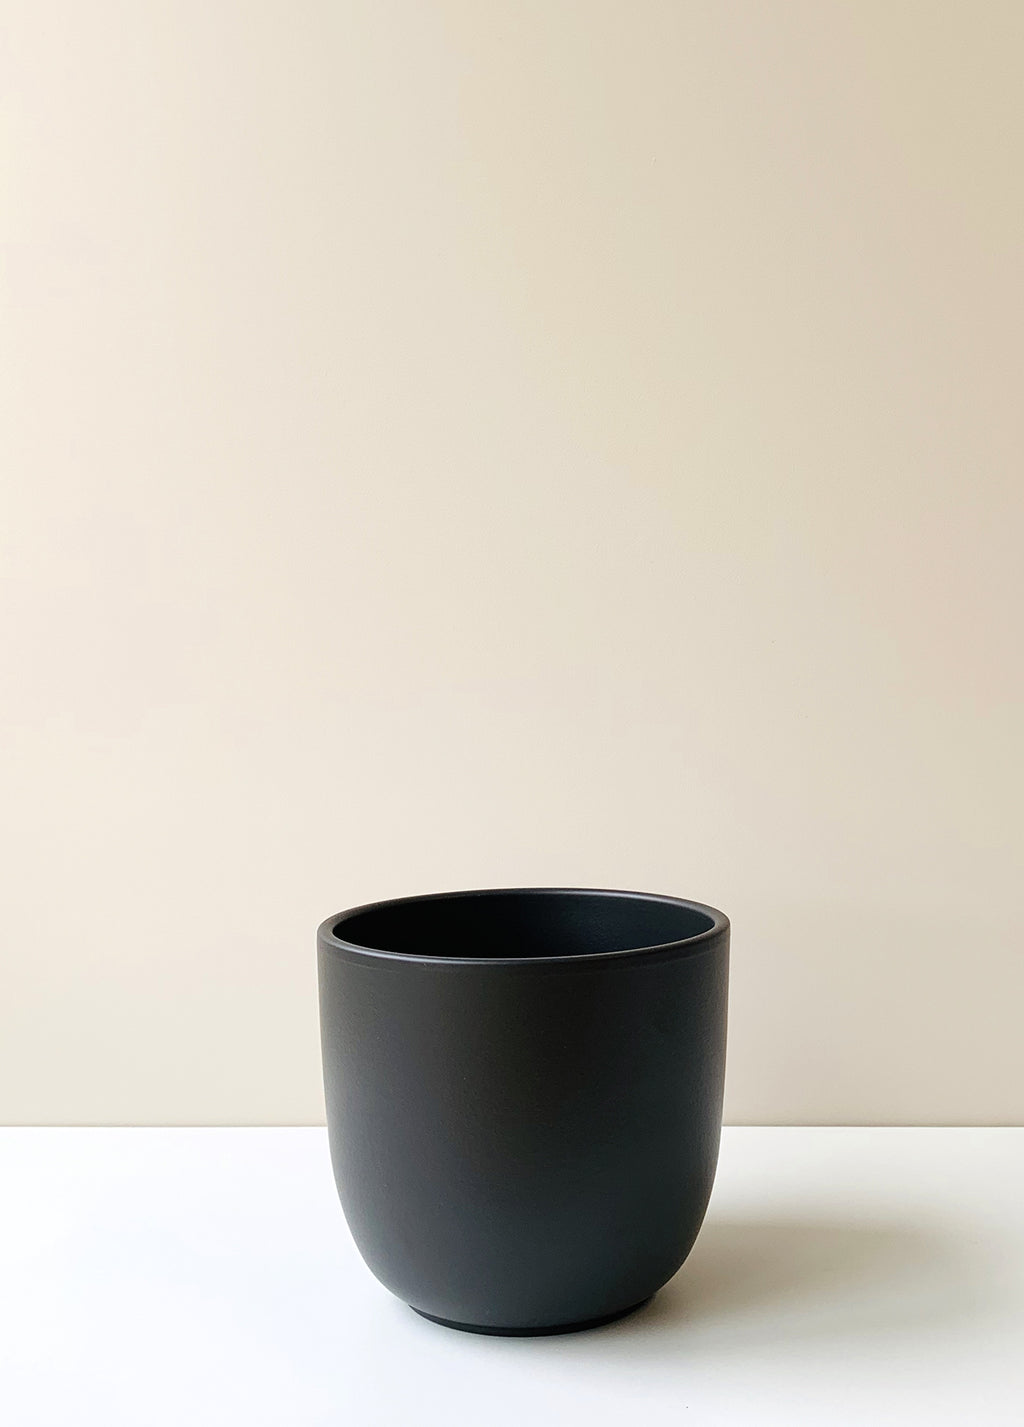 Tusca Matte Black Ceramic Planter